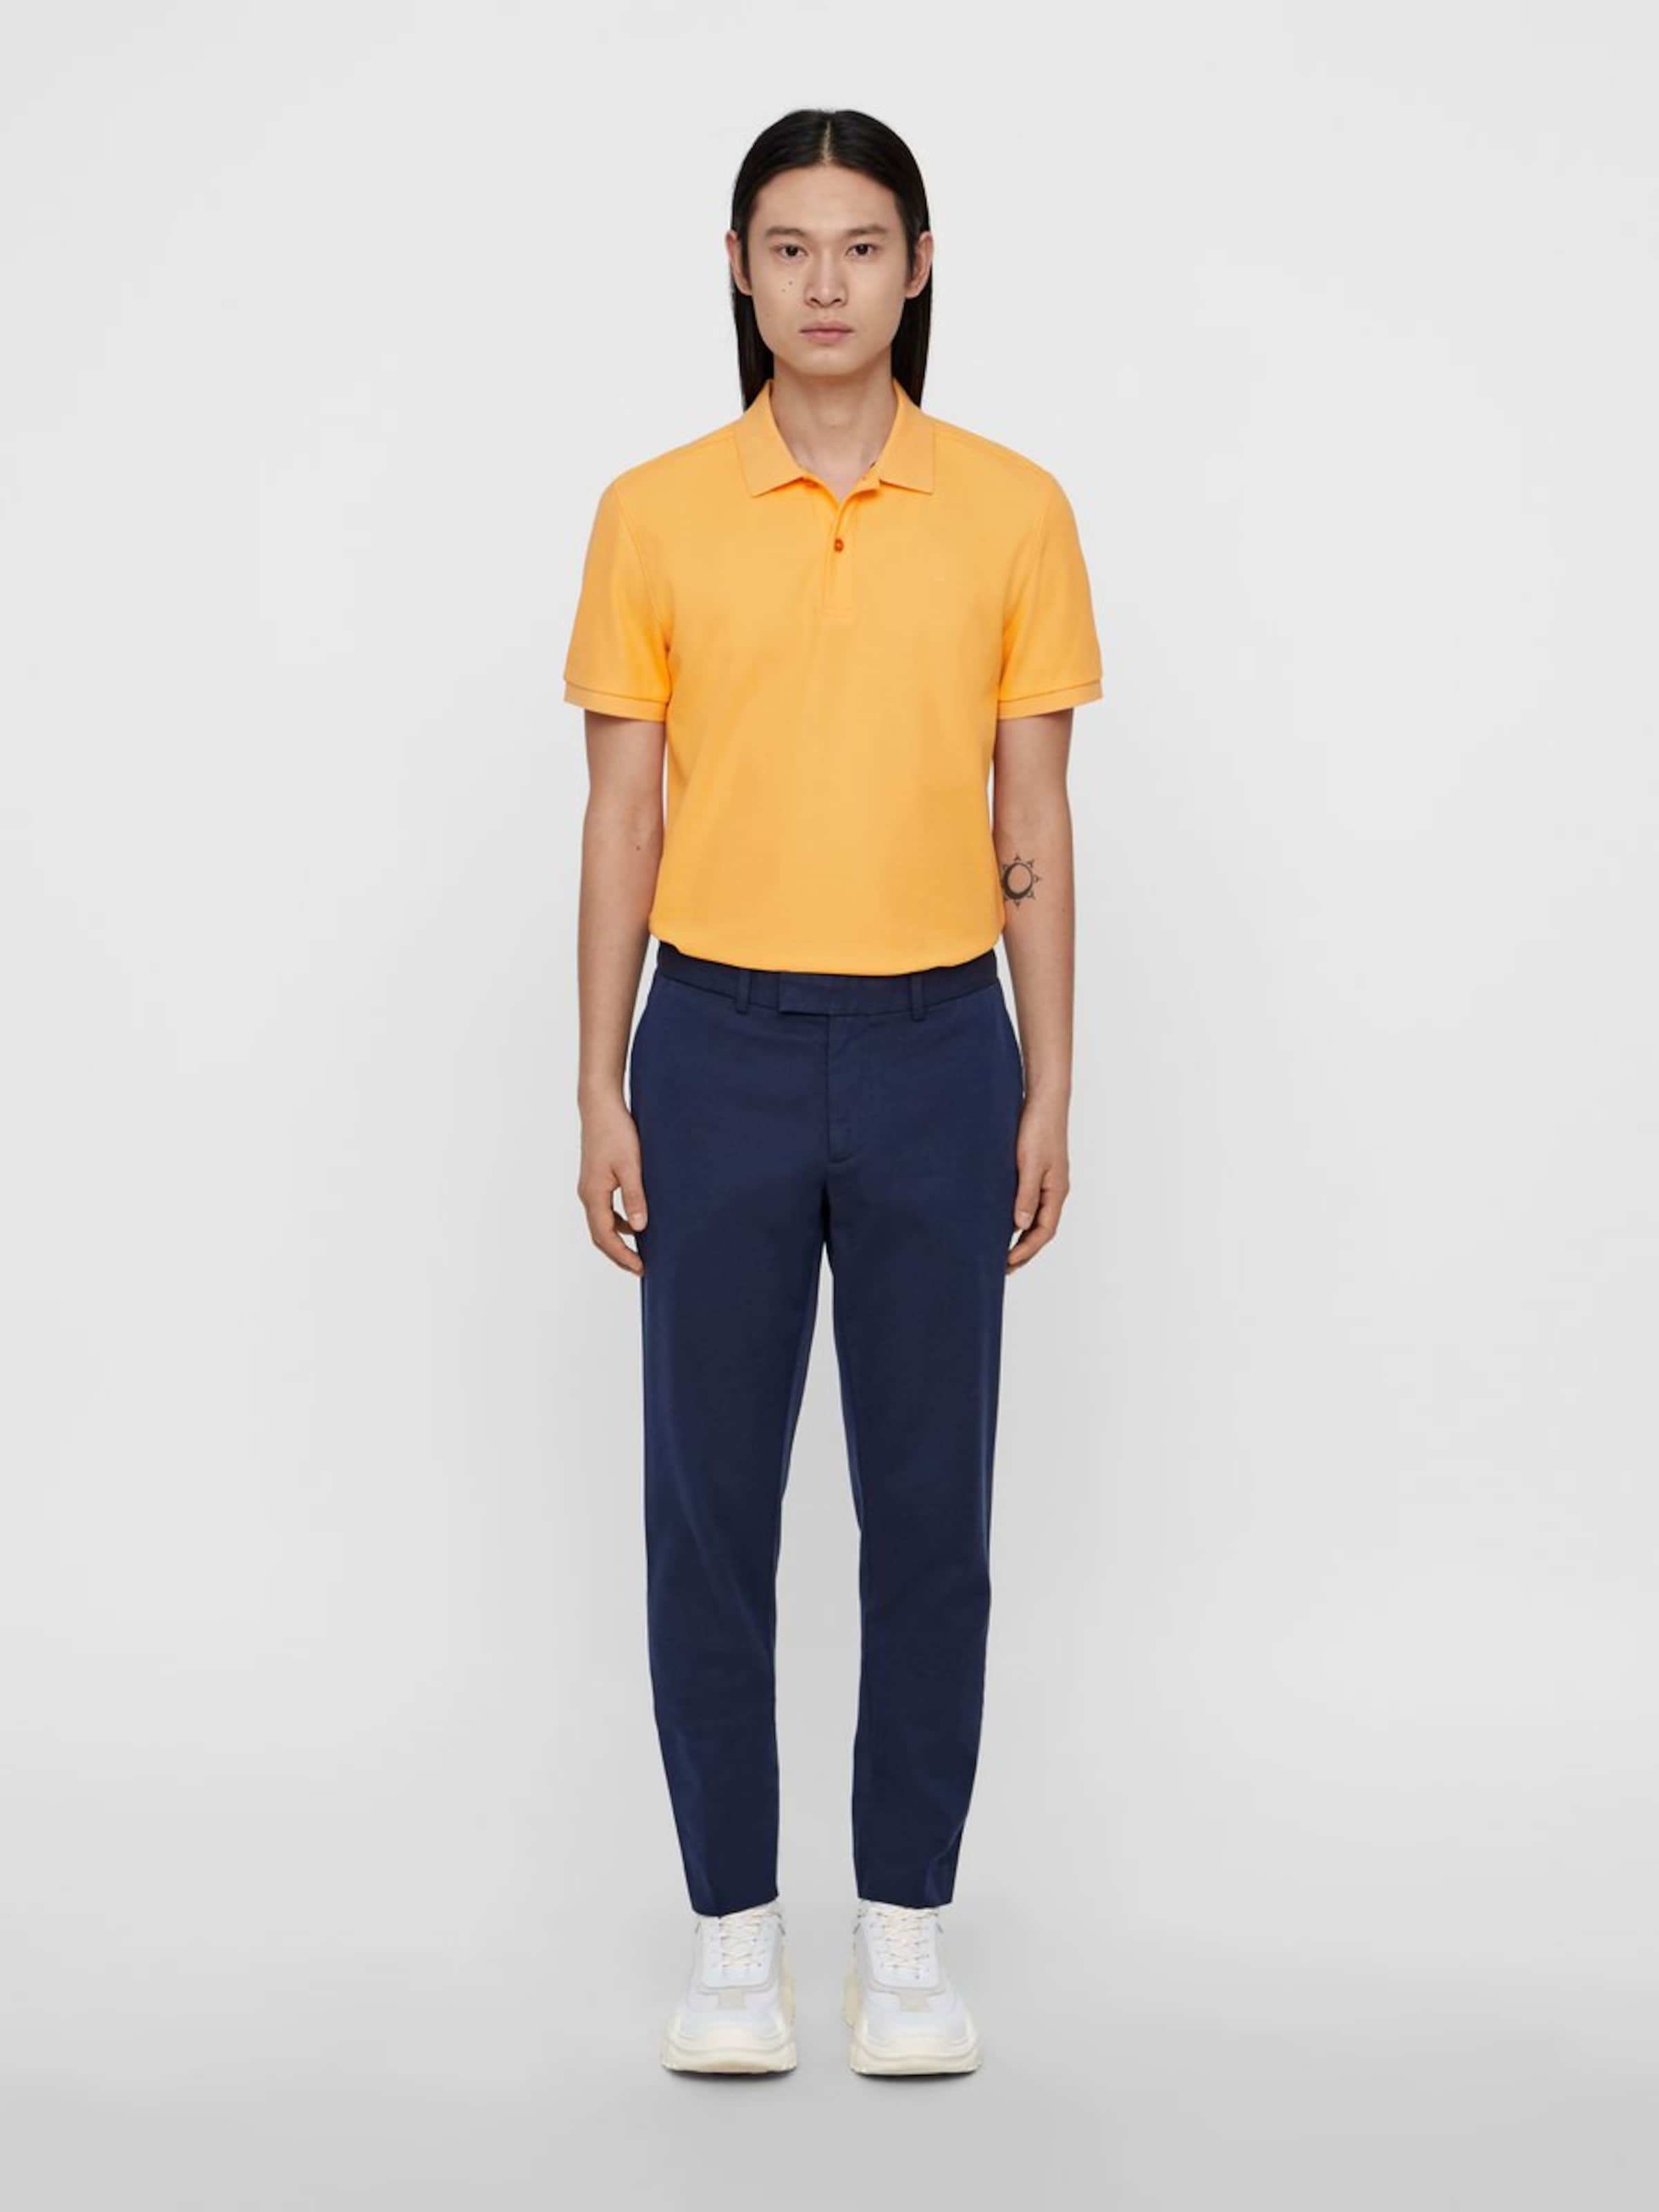 Poloshirt In Hellorange 'troy J lindeberg Pique' Clean 4LRj35A